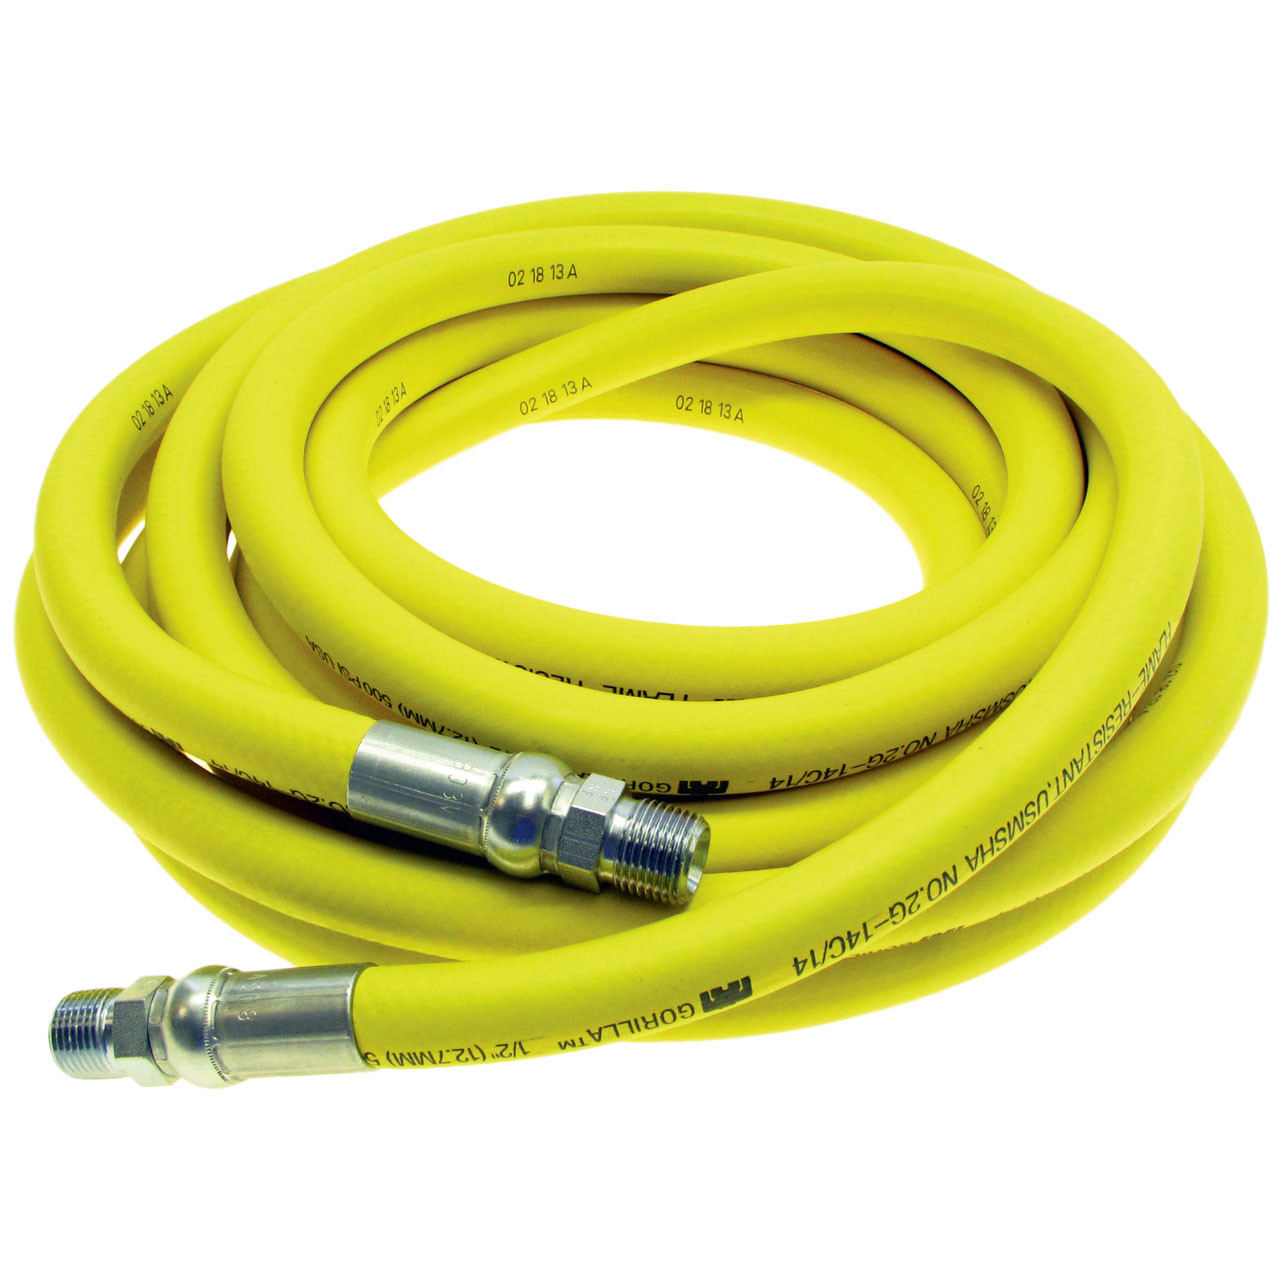 Charmant Gorilla 500 PSI Air Hose Assemblies W/ Crimped